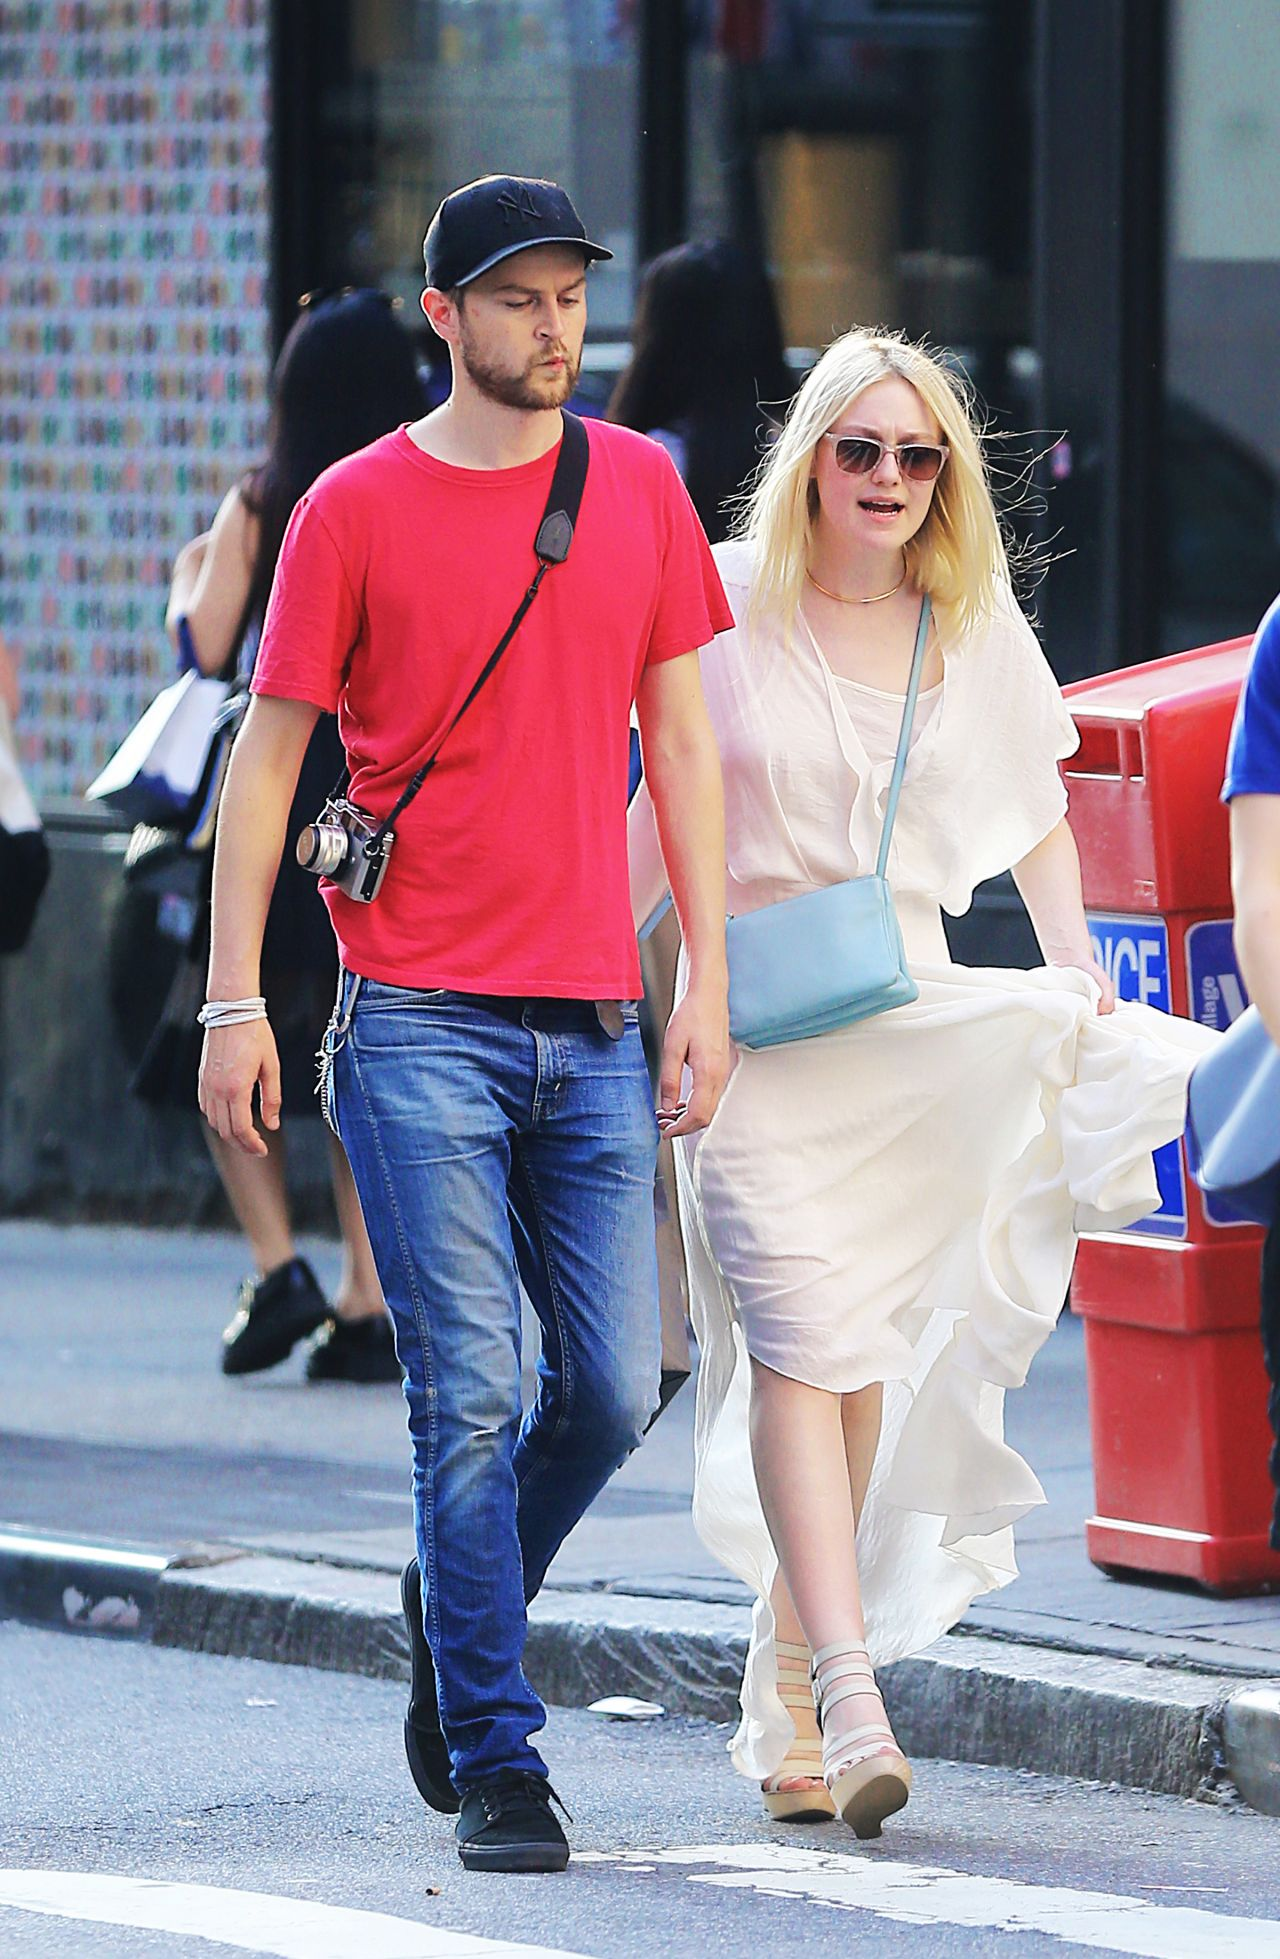 Dakota Fanning and Her Boyfriend Out in NYC - July 2014 Dakota Fanning Boyfriend